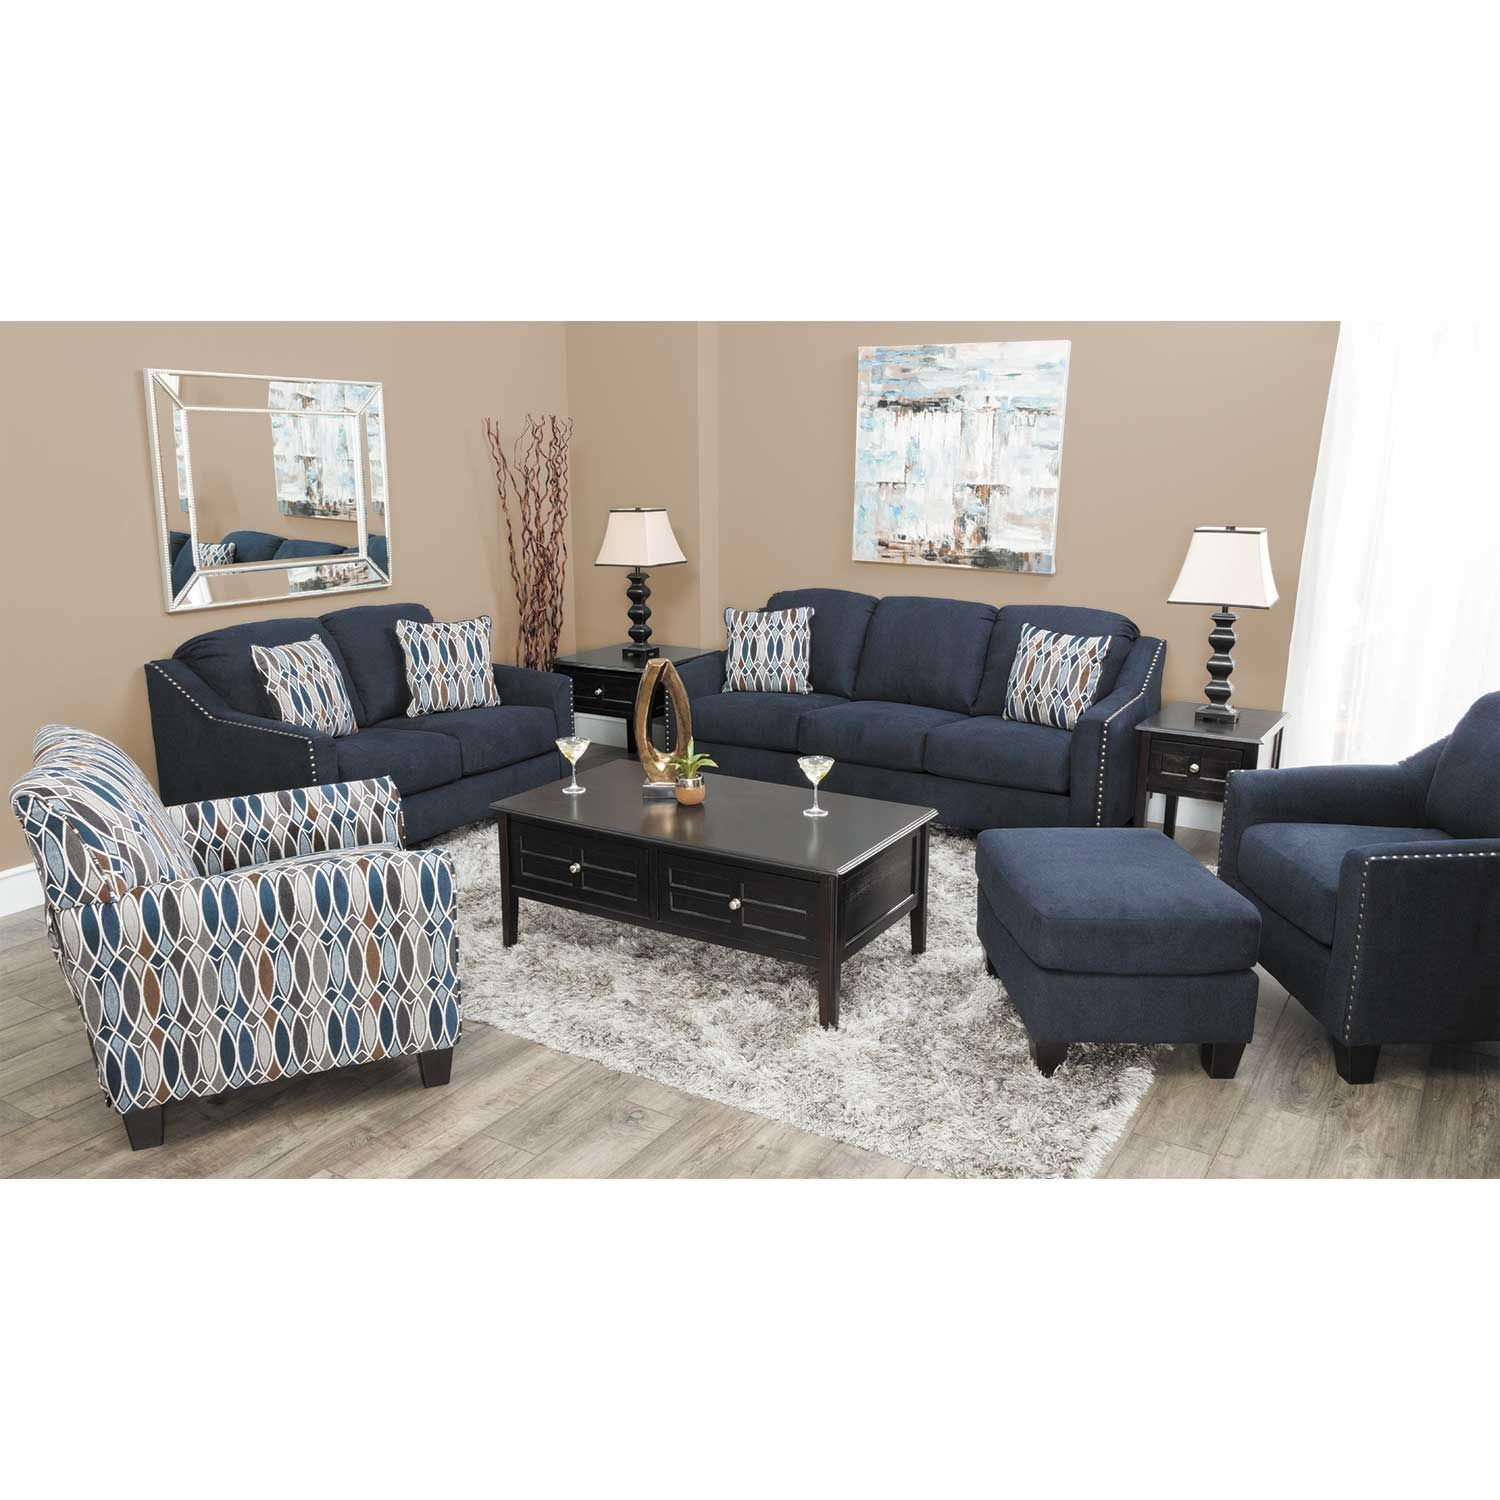 Picture of Creeal Heights Ink Queen Sleeper Sofa